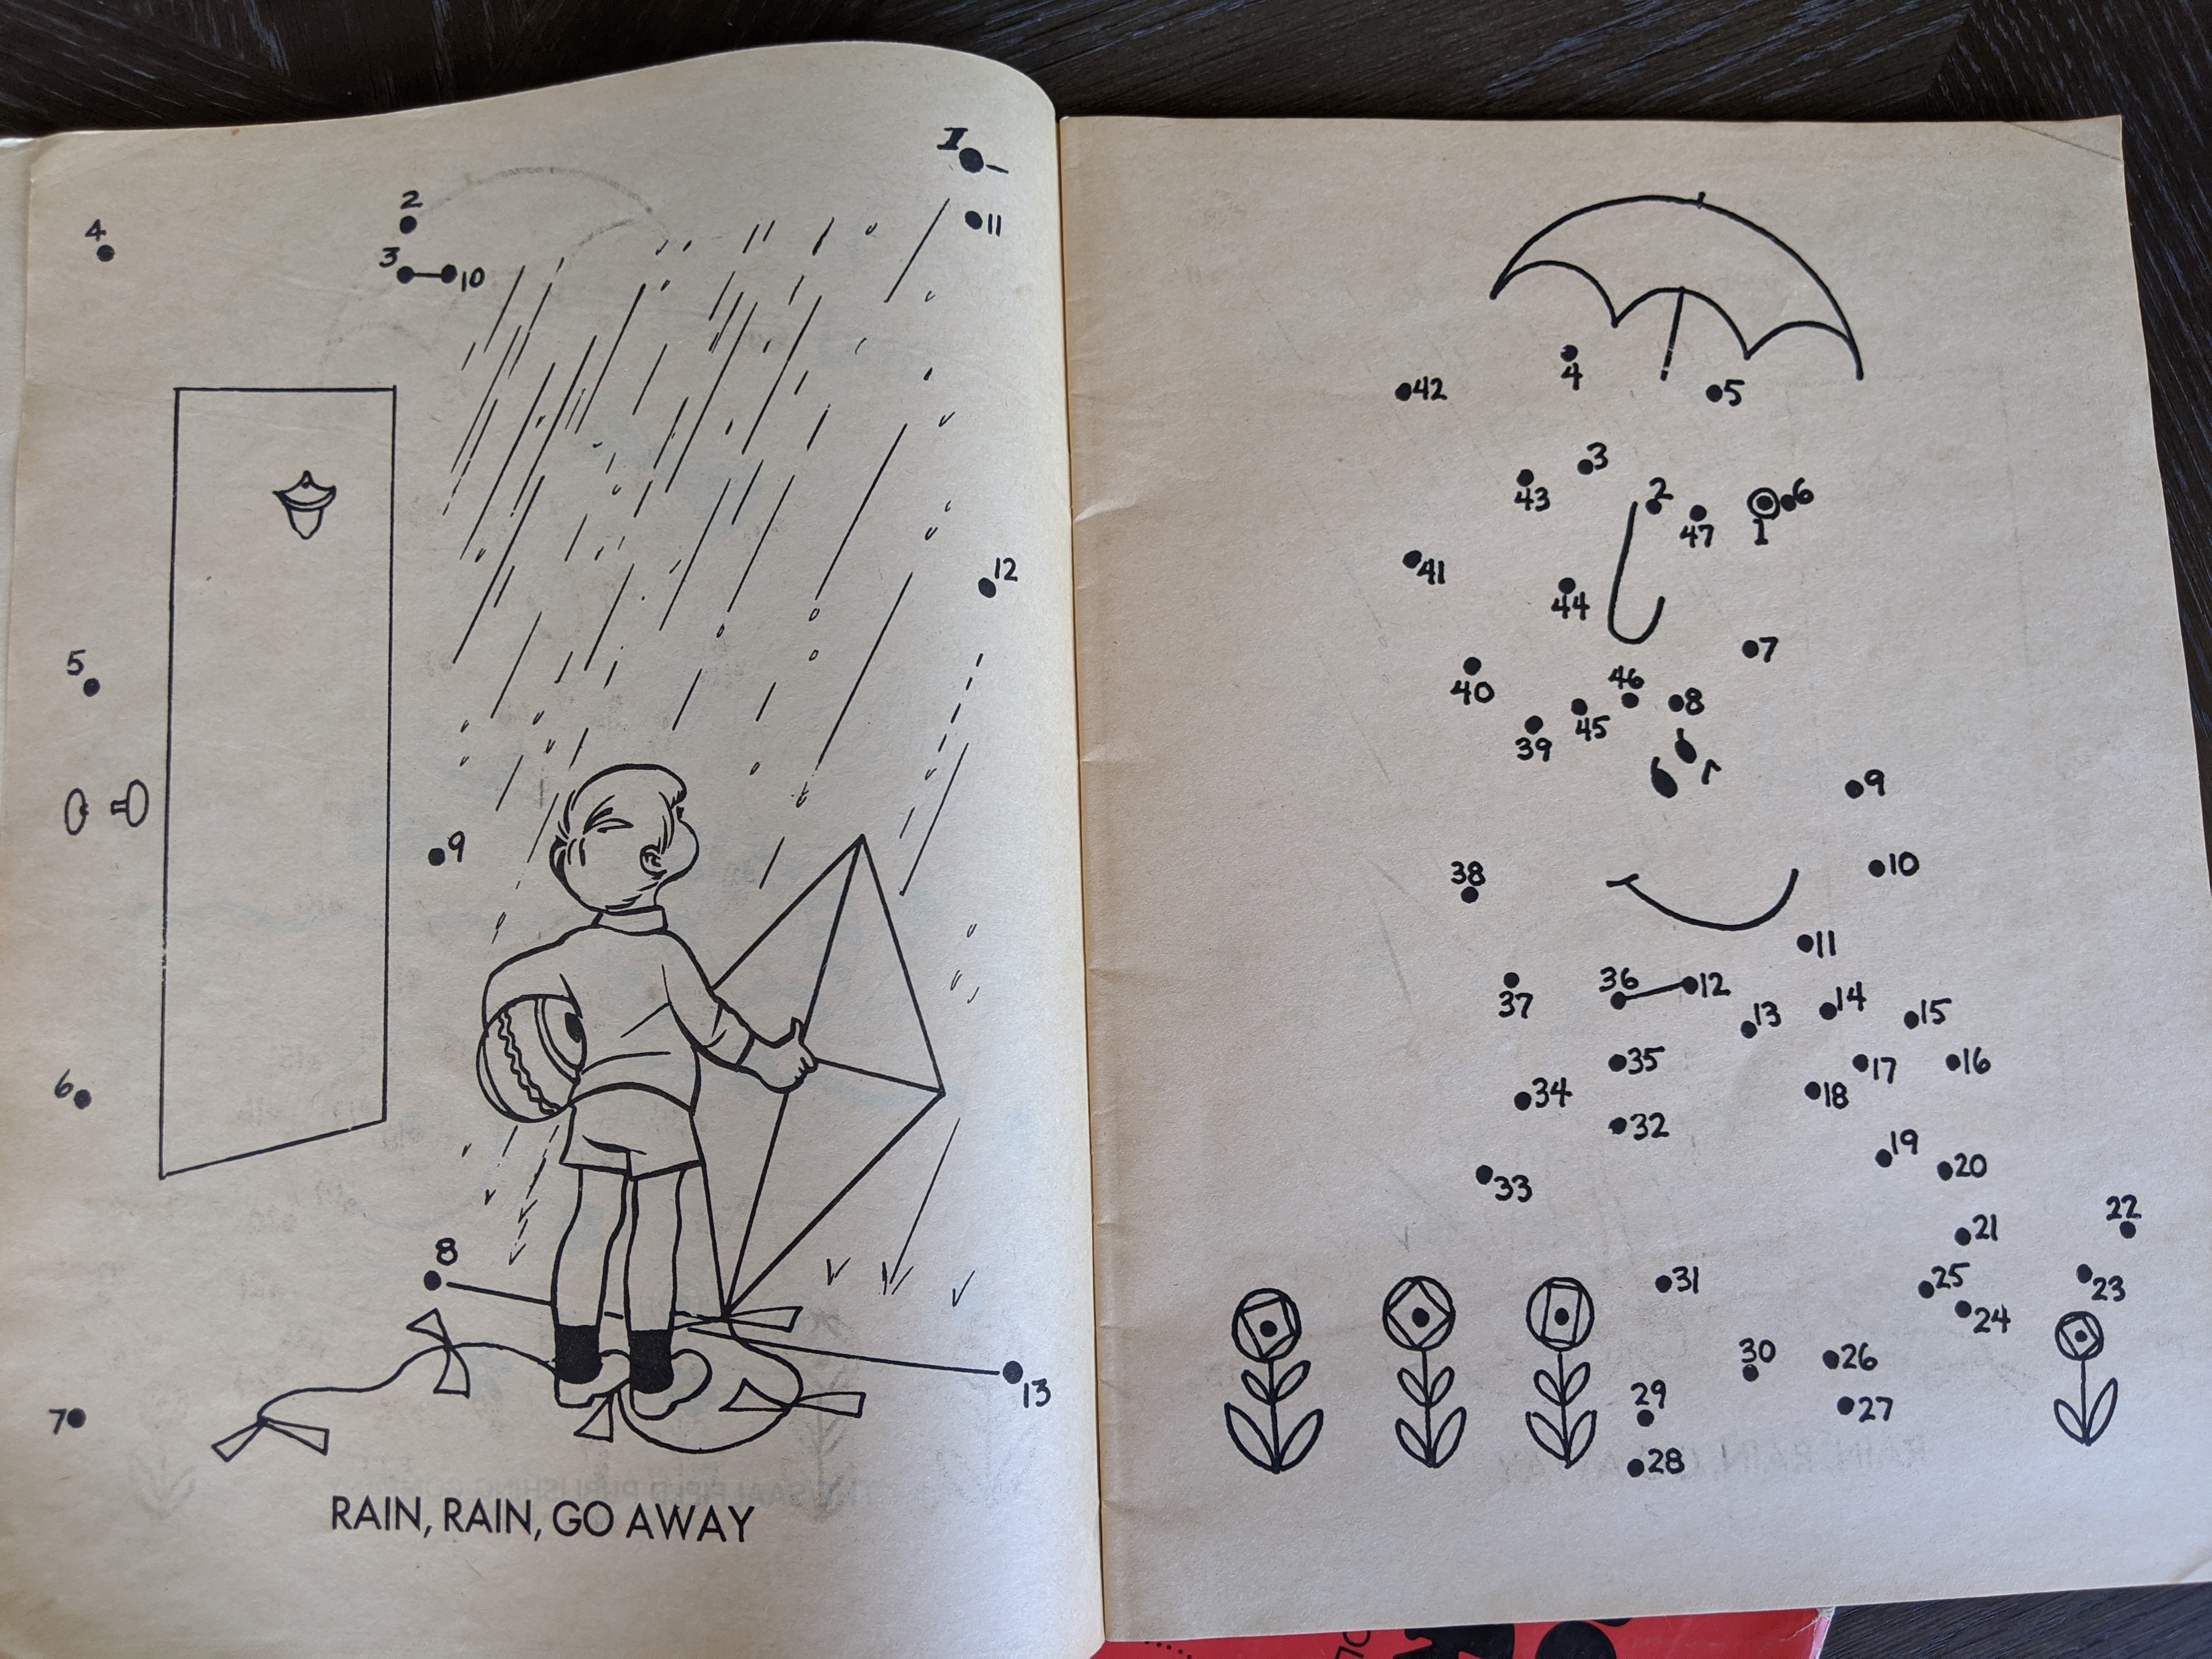 image of activity book artwork